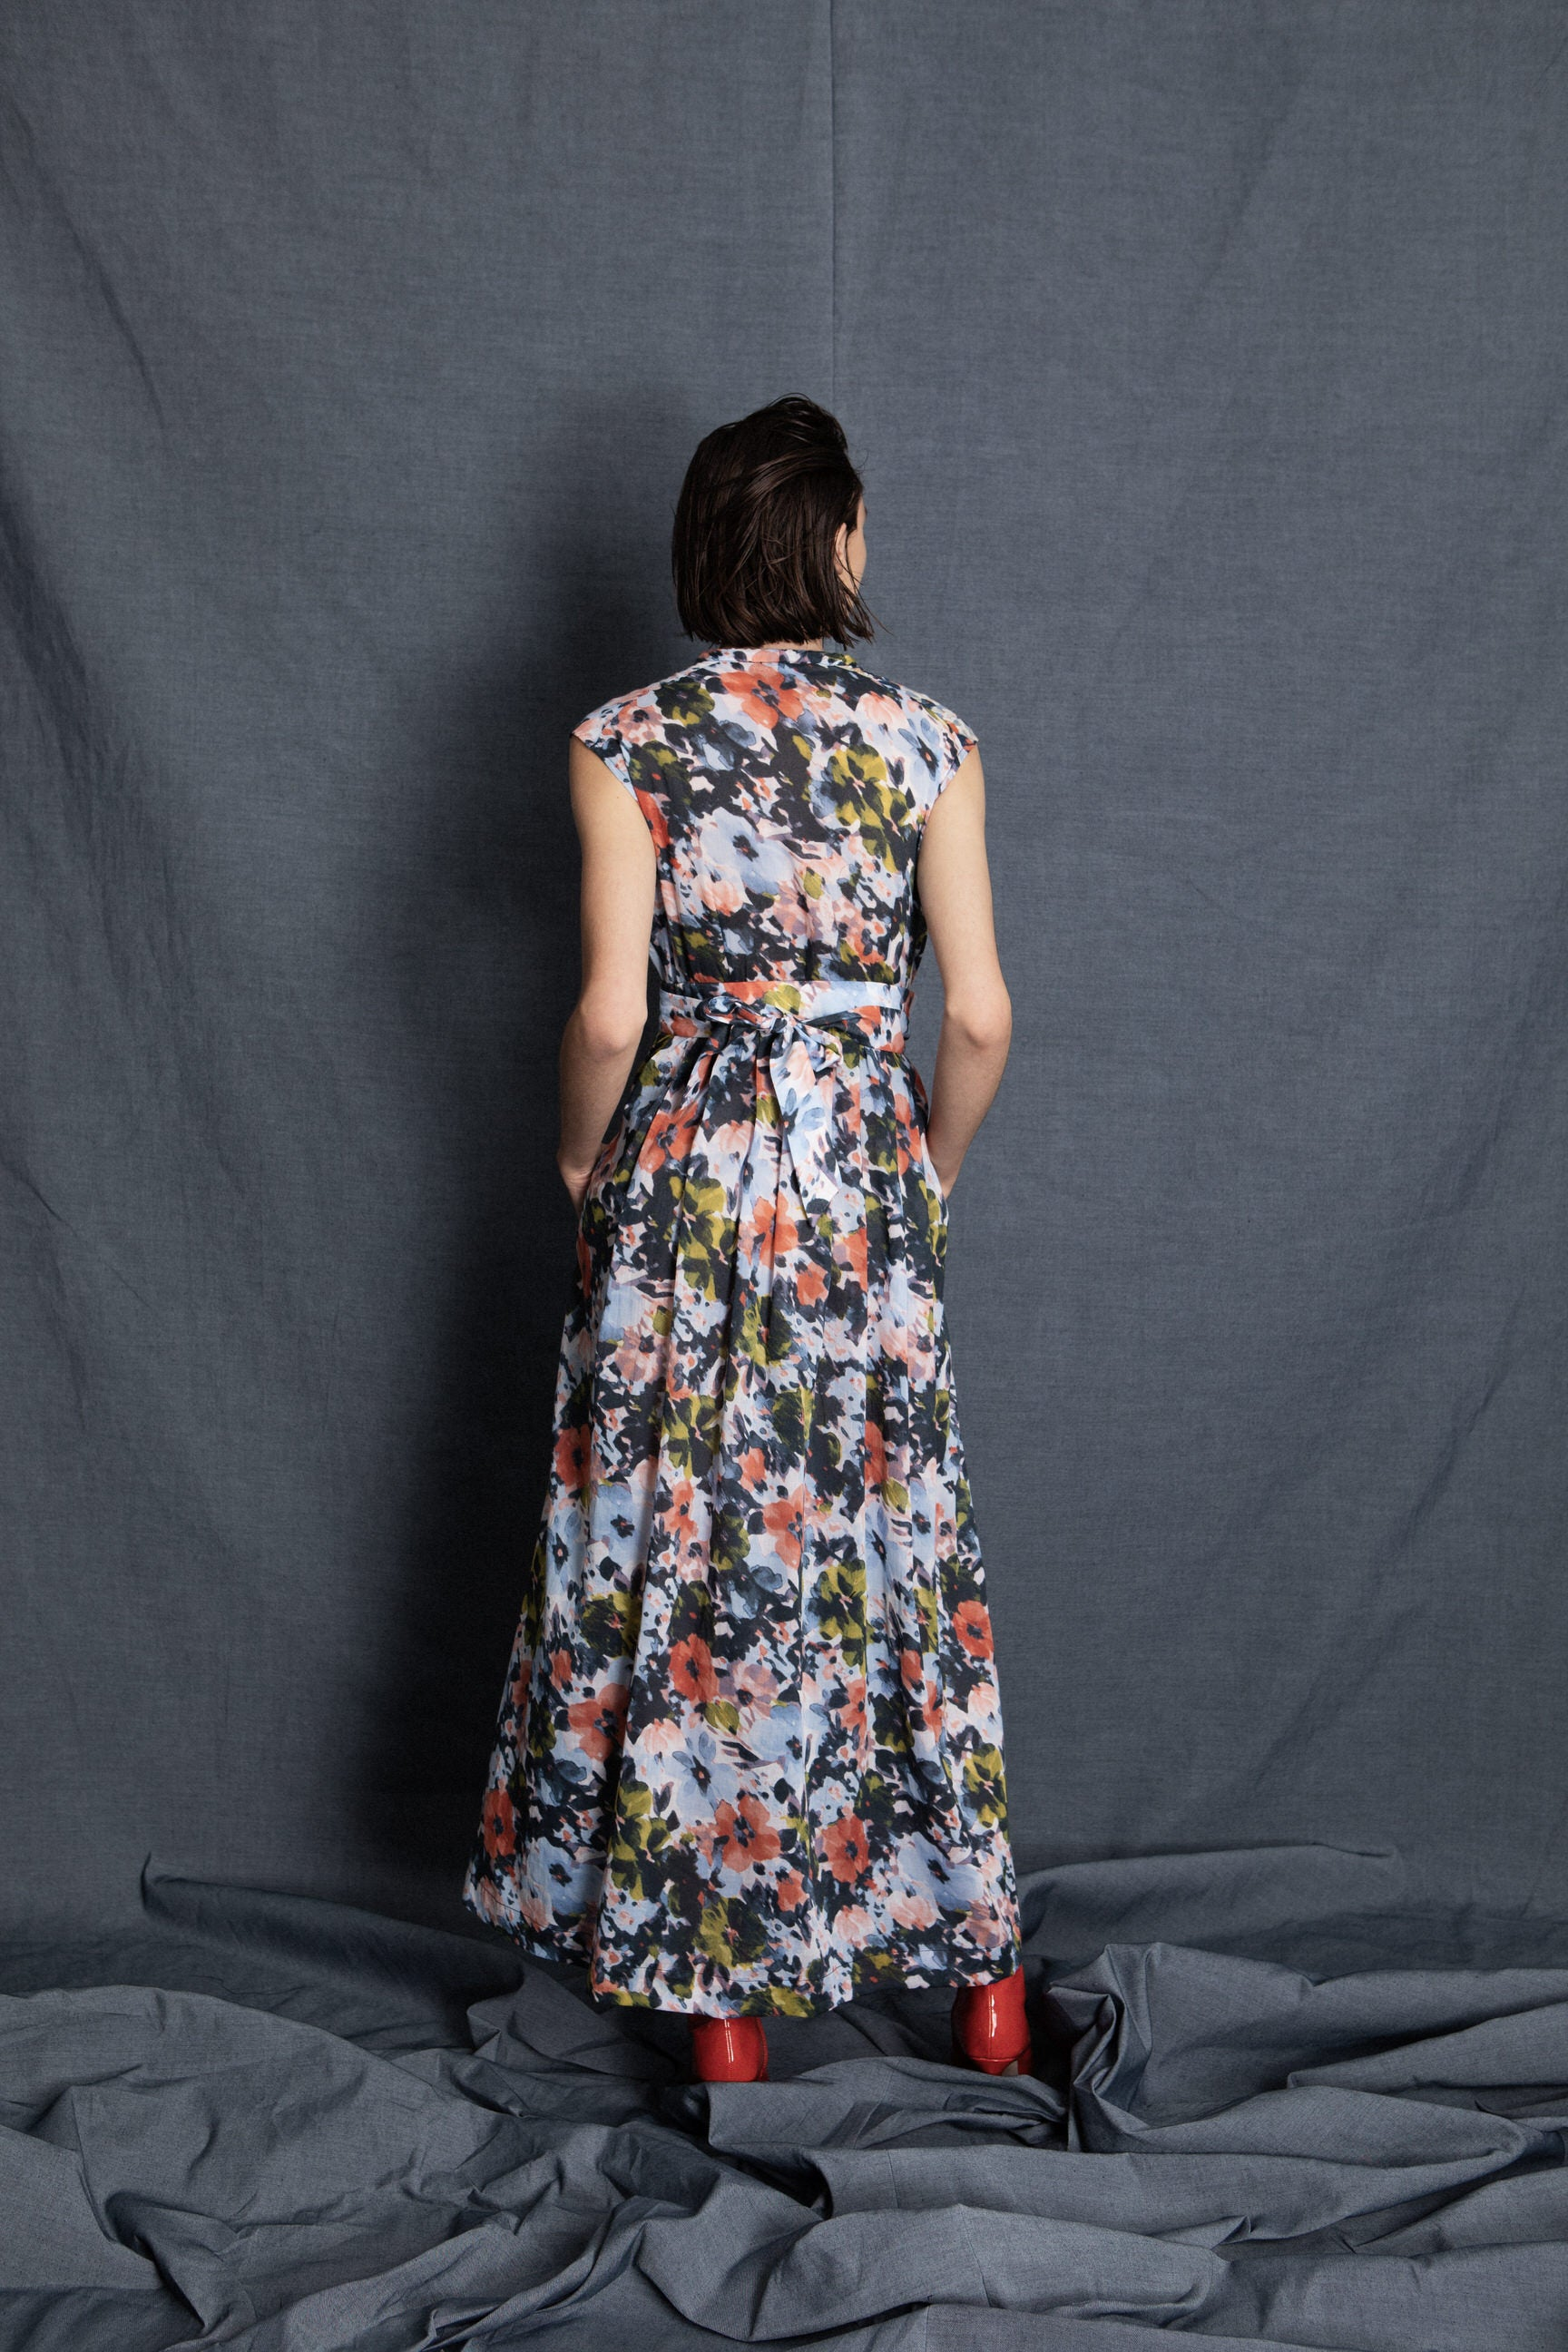 Lord floral print dress - heroic-online